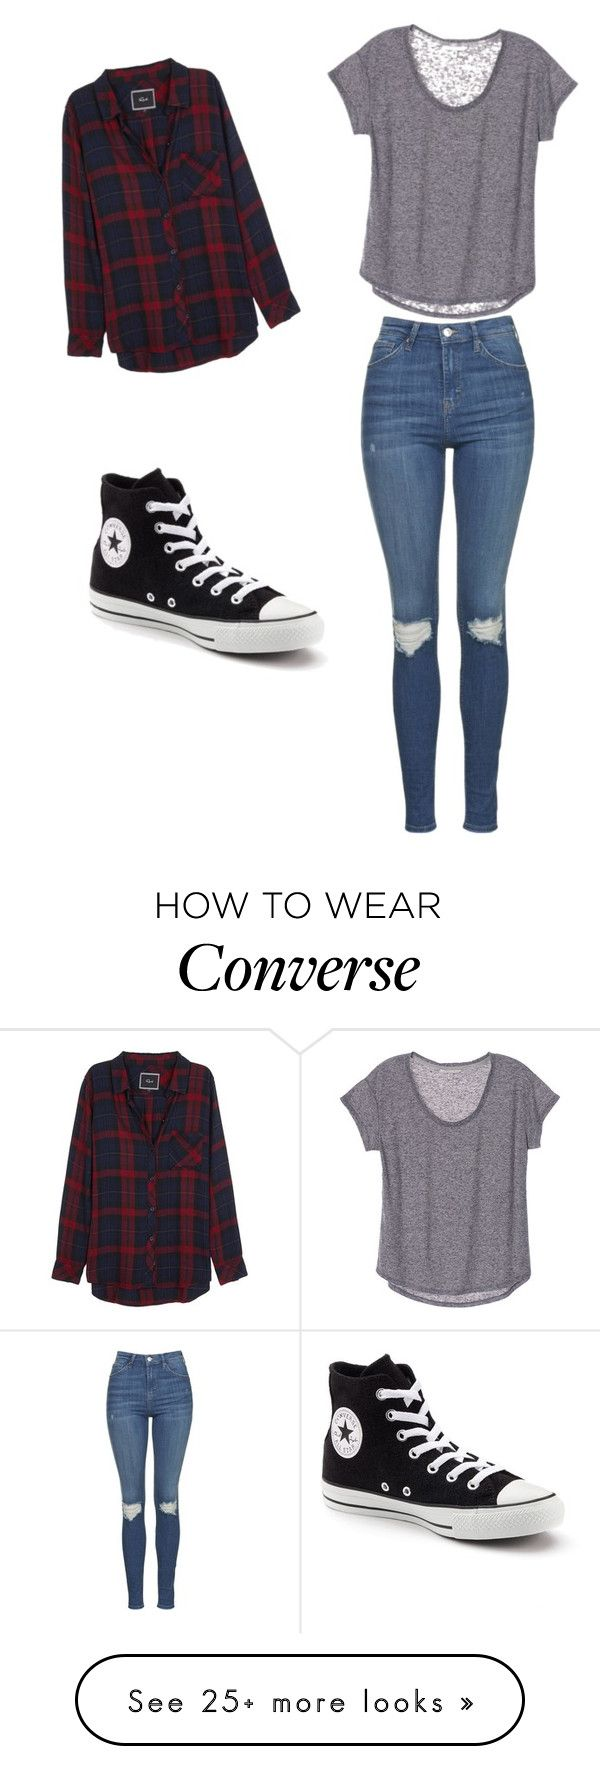 How to high wear top converse polyvore